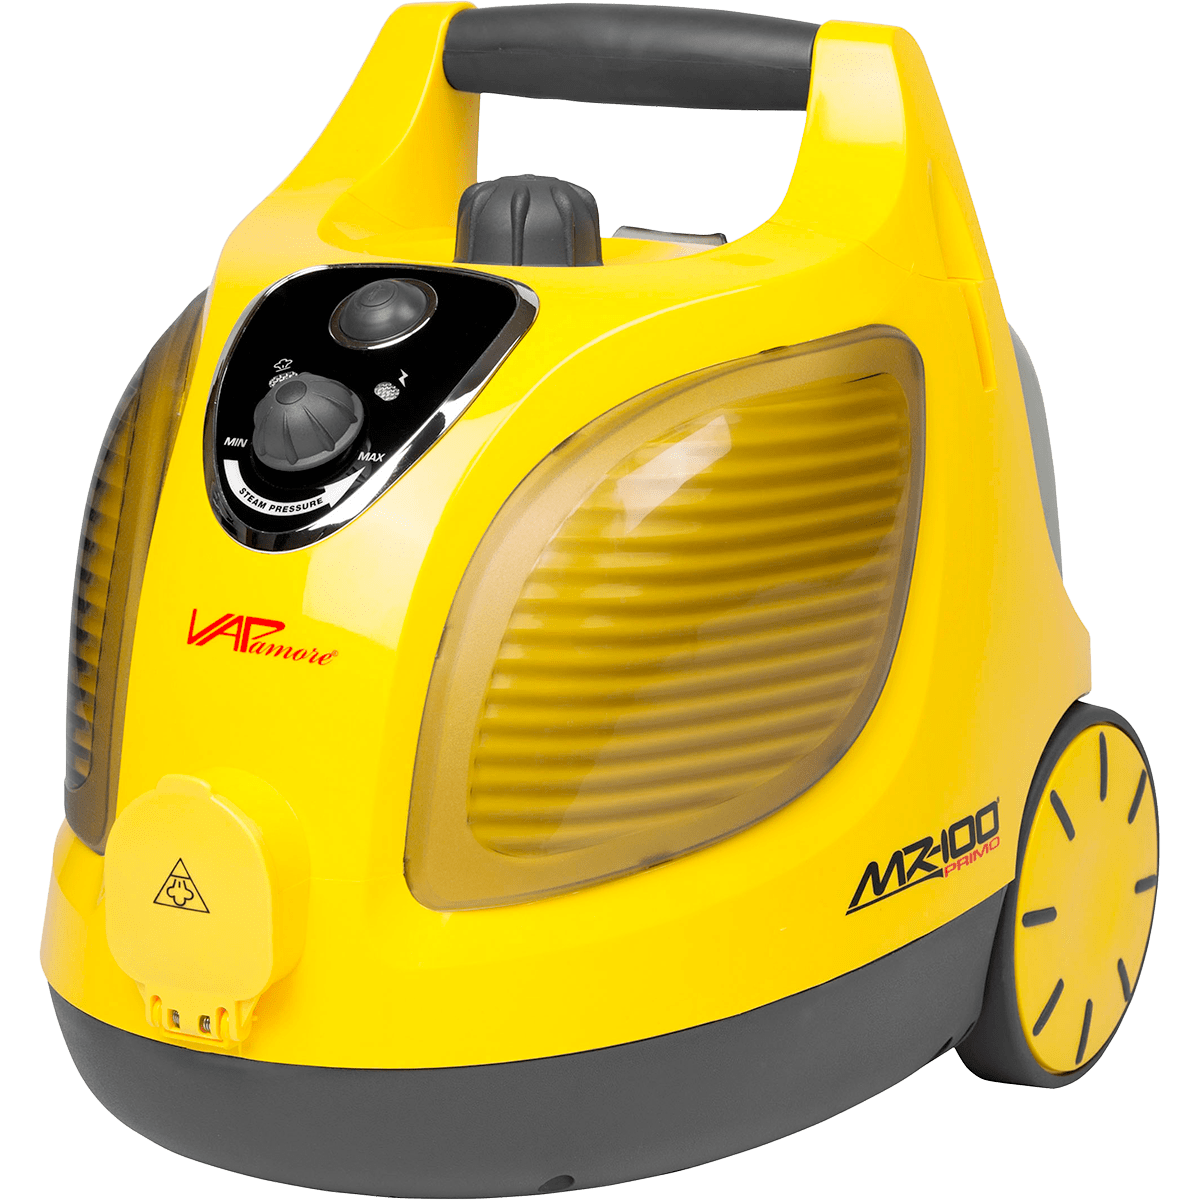 Vapamore MR-100 Primo Steam Cleaner Model: MR-100 Water Tank